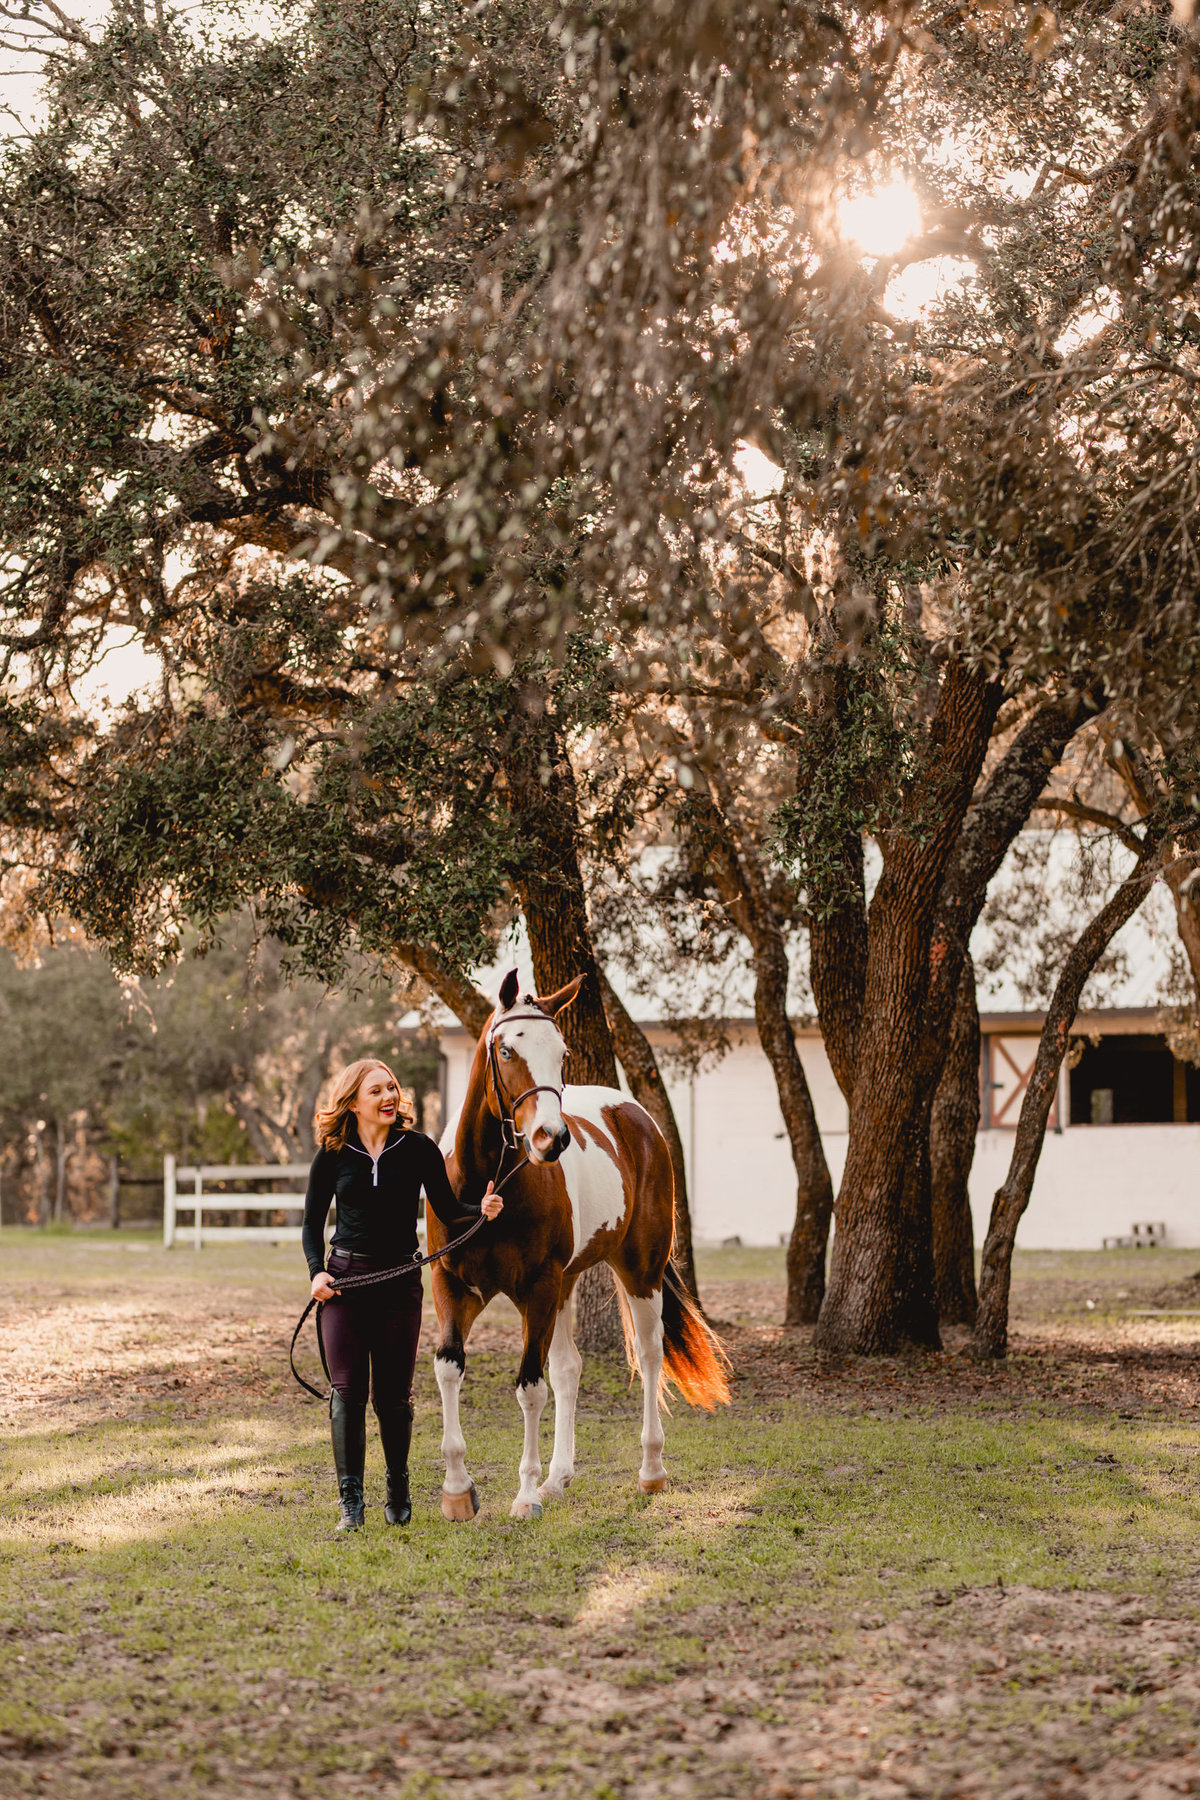 English horse and rider have photoshoot together in Ocala, FL with pro photographer